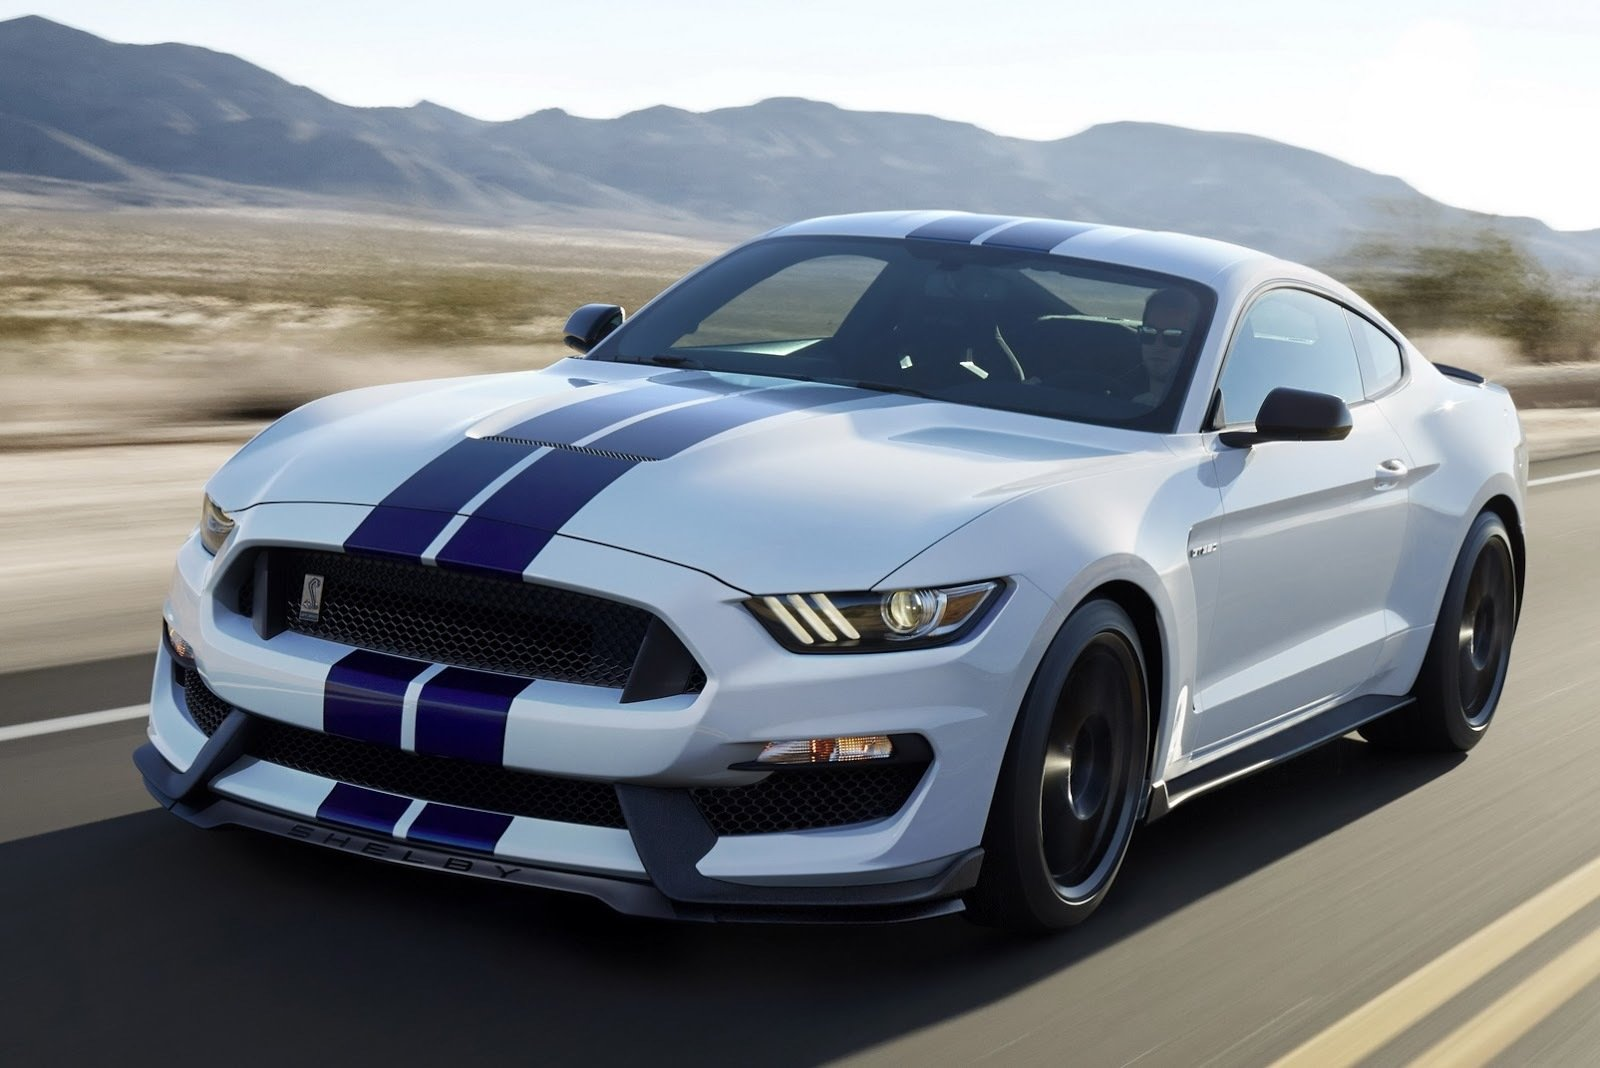 2015 Ford Mustang Shelby GT350 Promo video's